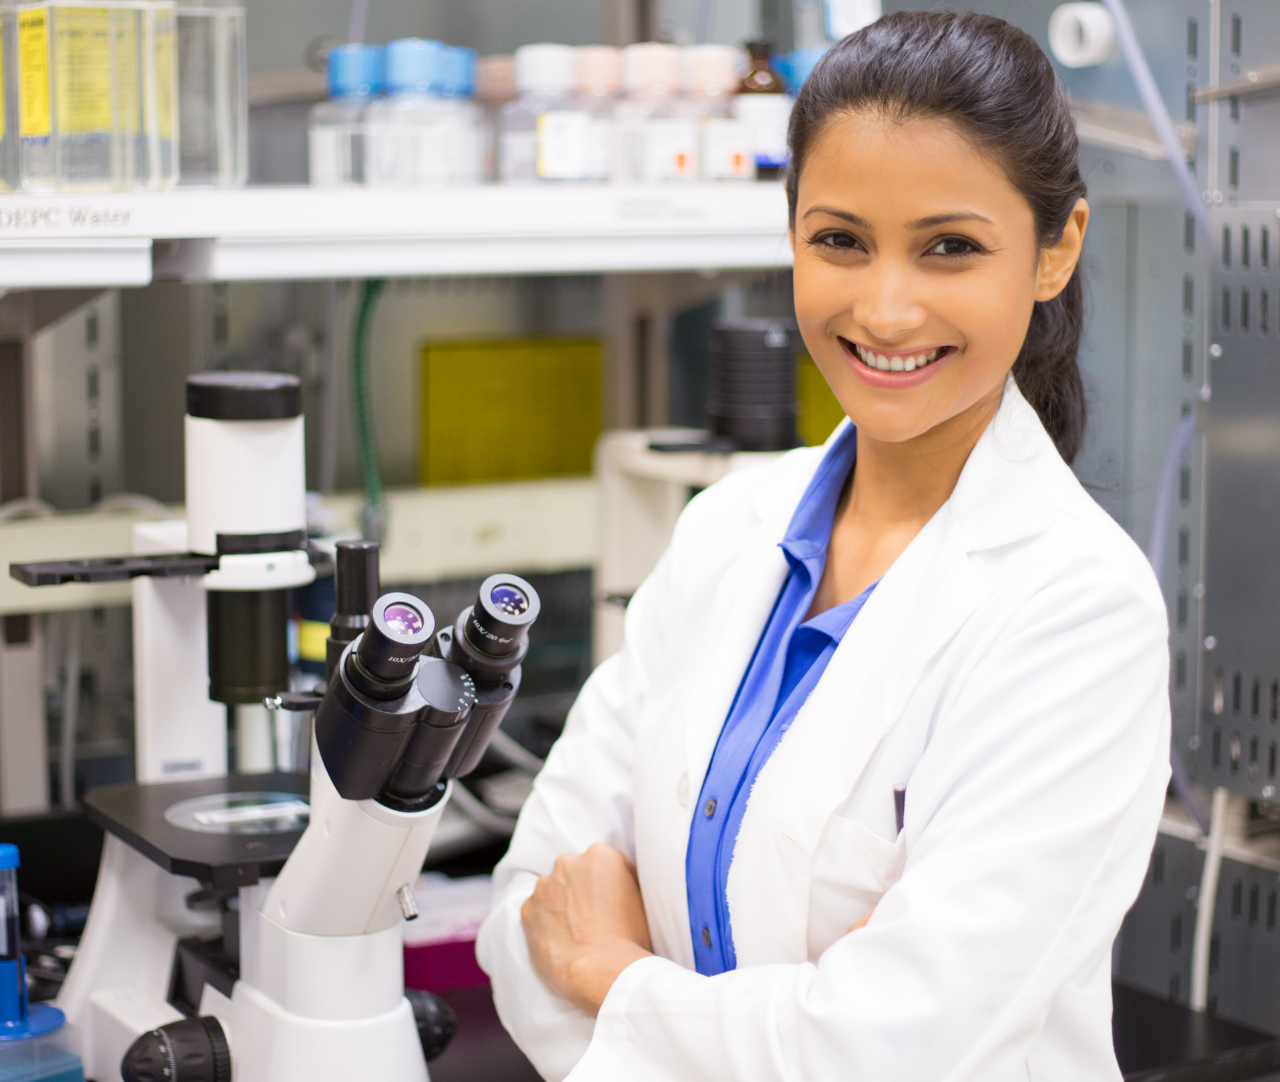 https://skilldevo.com/wp-content/uploads/2021/03/cropped-smiling-young-scientist-1280x1082.png